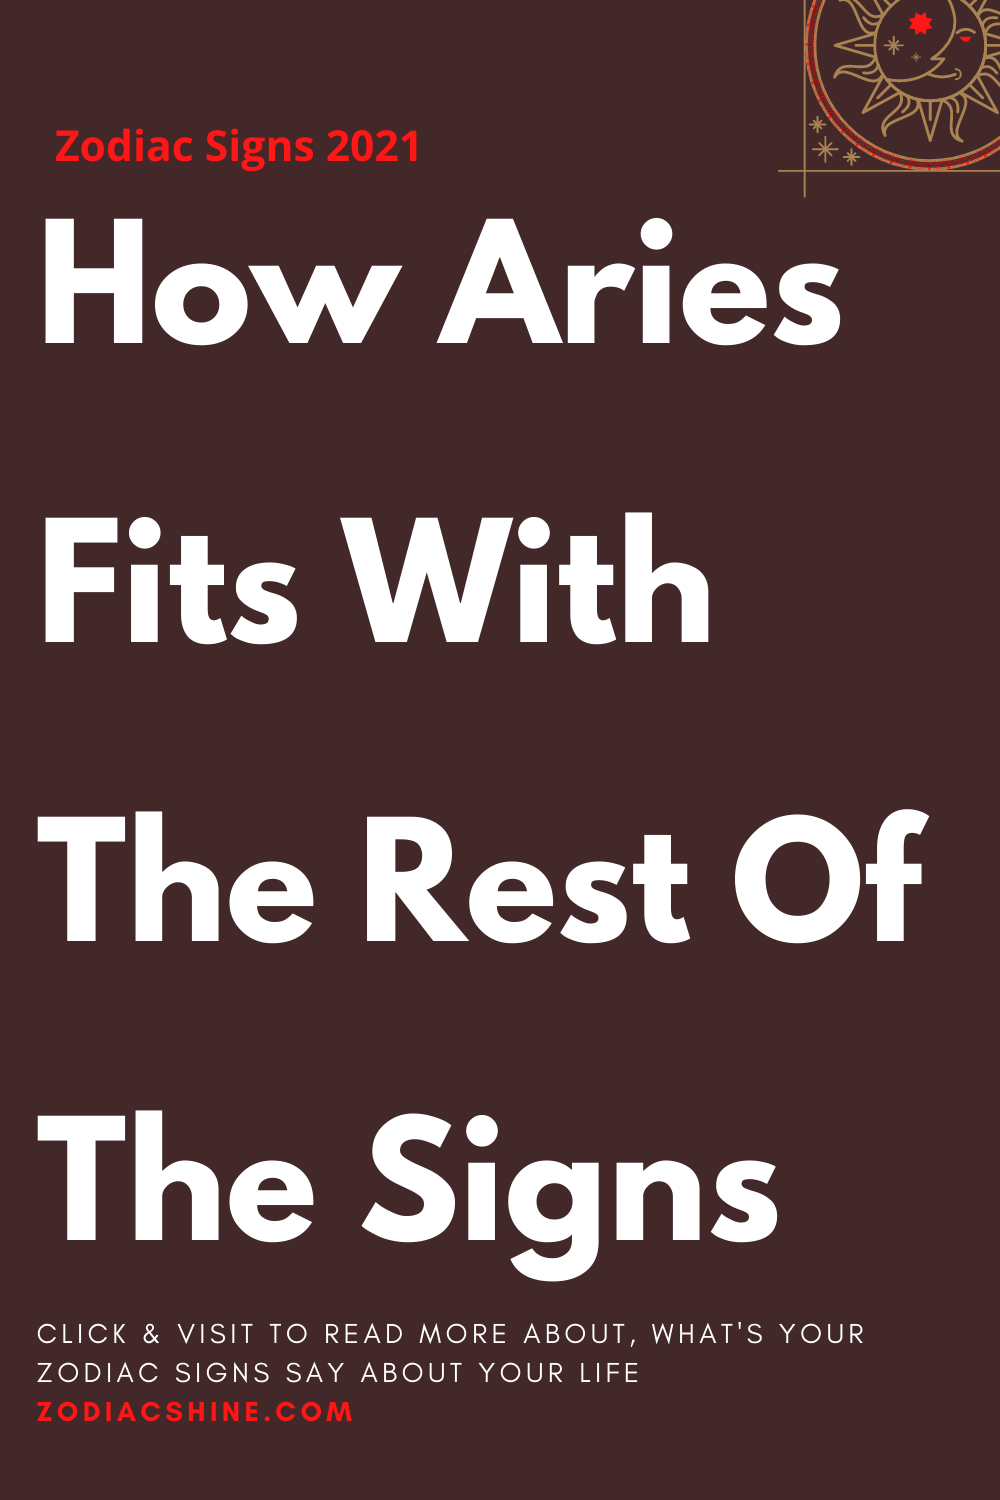 How Aries Fits With The Rest Of The Signs